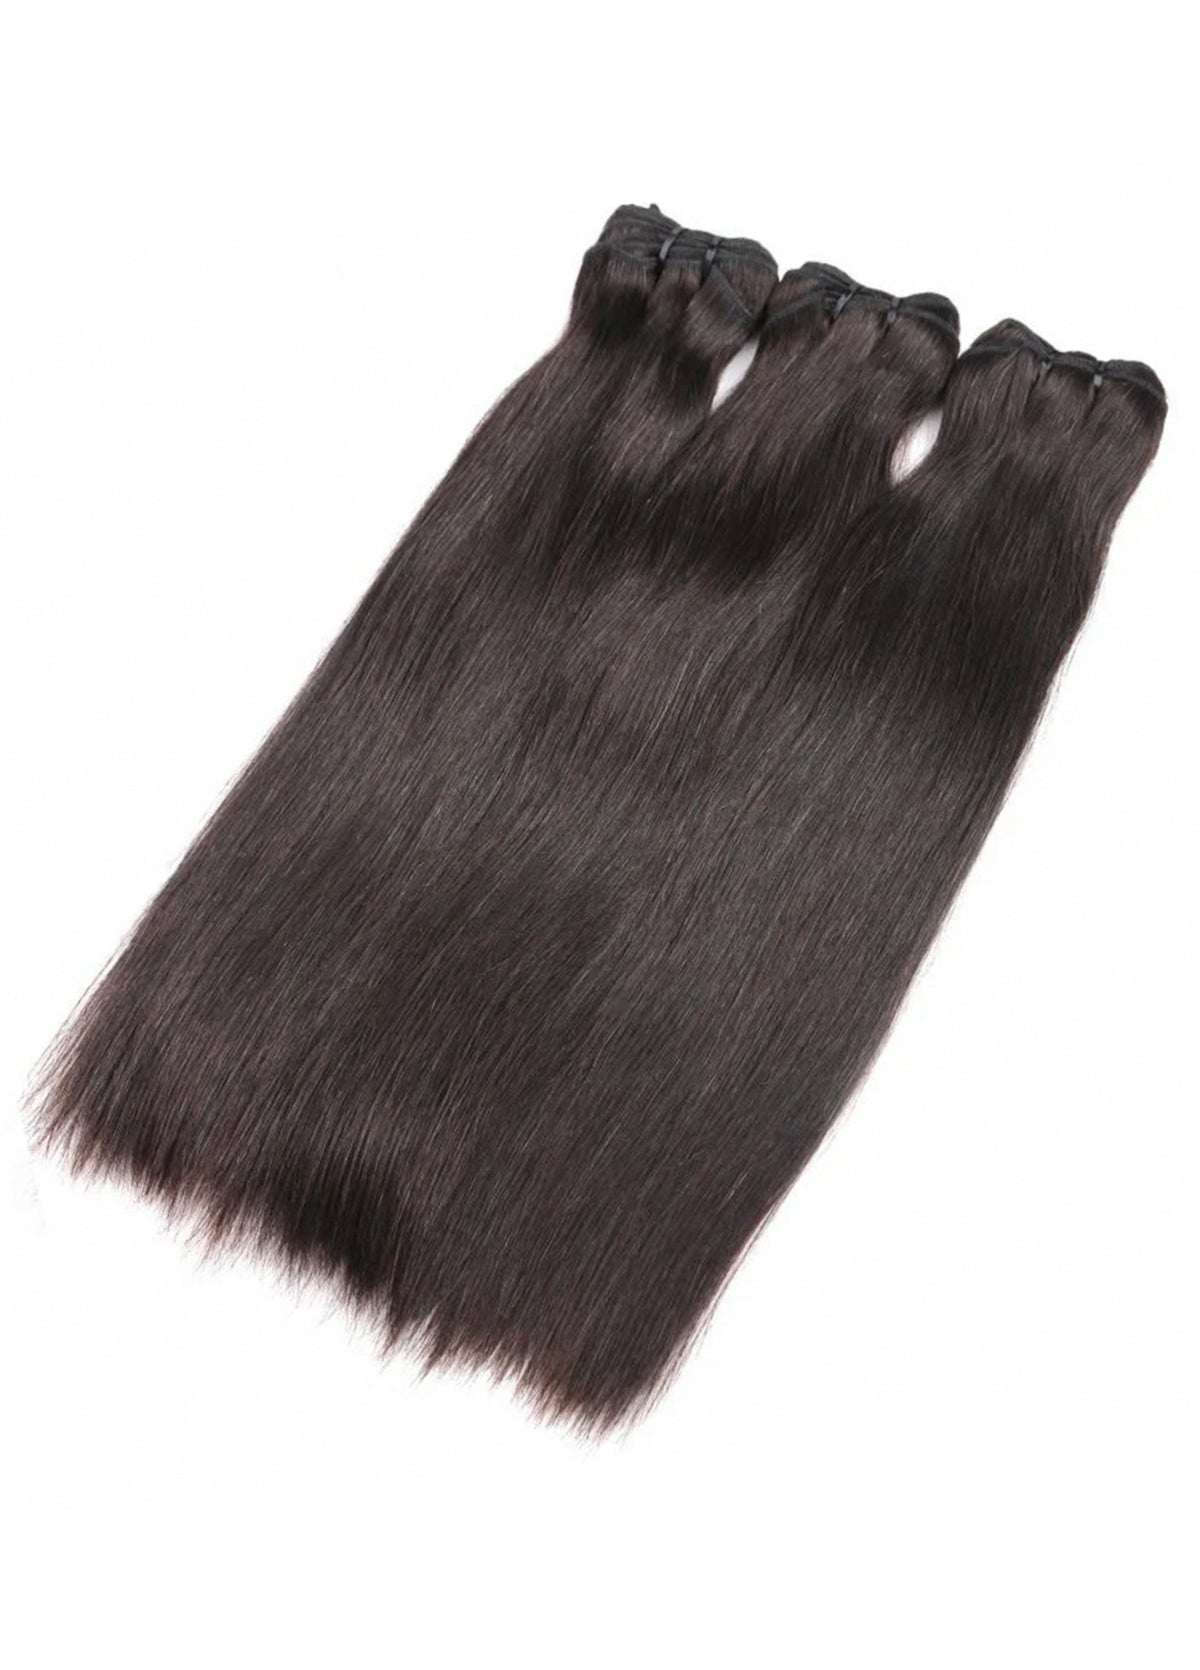 Raw Vietnamese Silky Straight Bundles